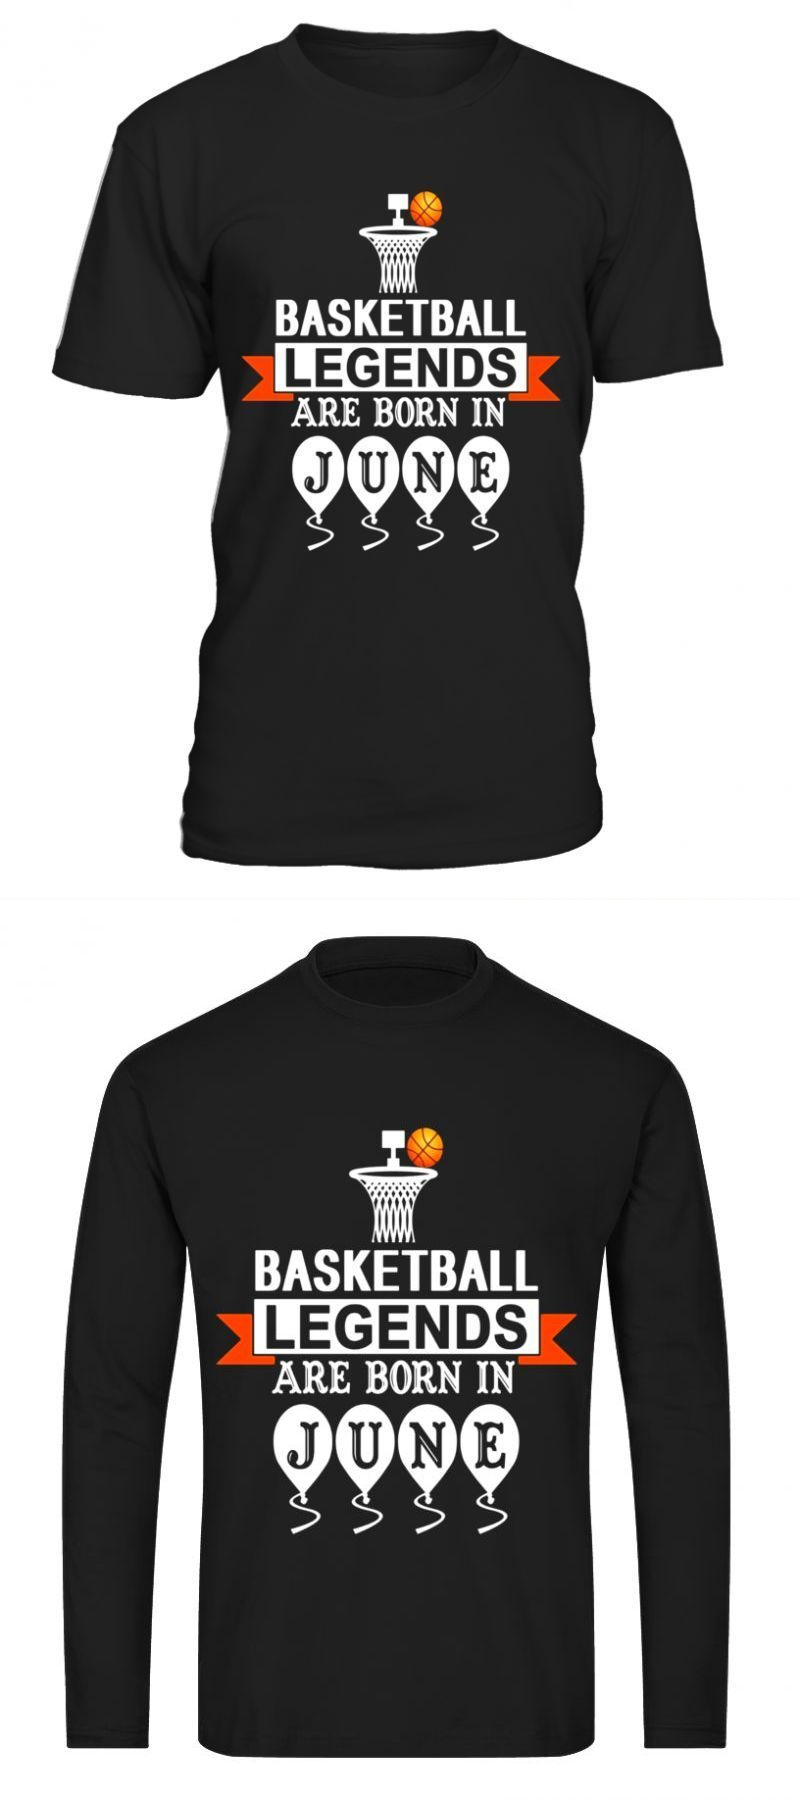 ef13a0d2 Basketball legends are born in june birthday gift shirt 2017 #basketball # legends #are #born #in #june #birthday #gift #shirt #2017 #design #ideas  #for ...